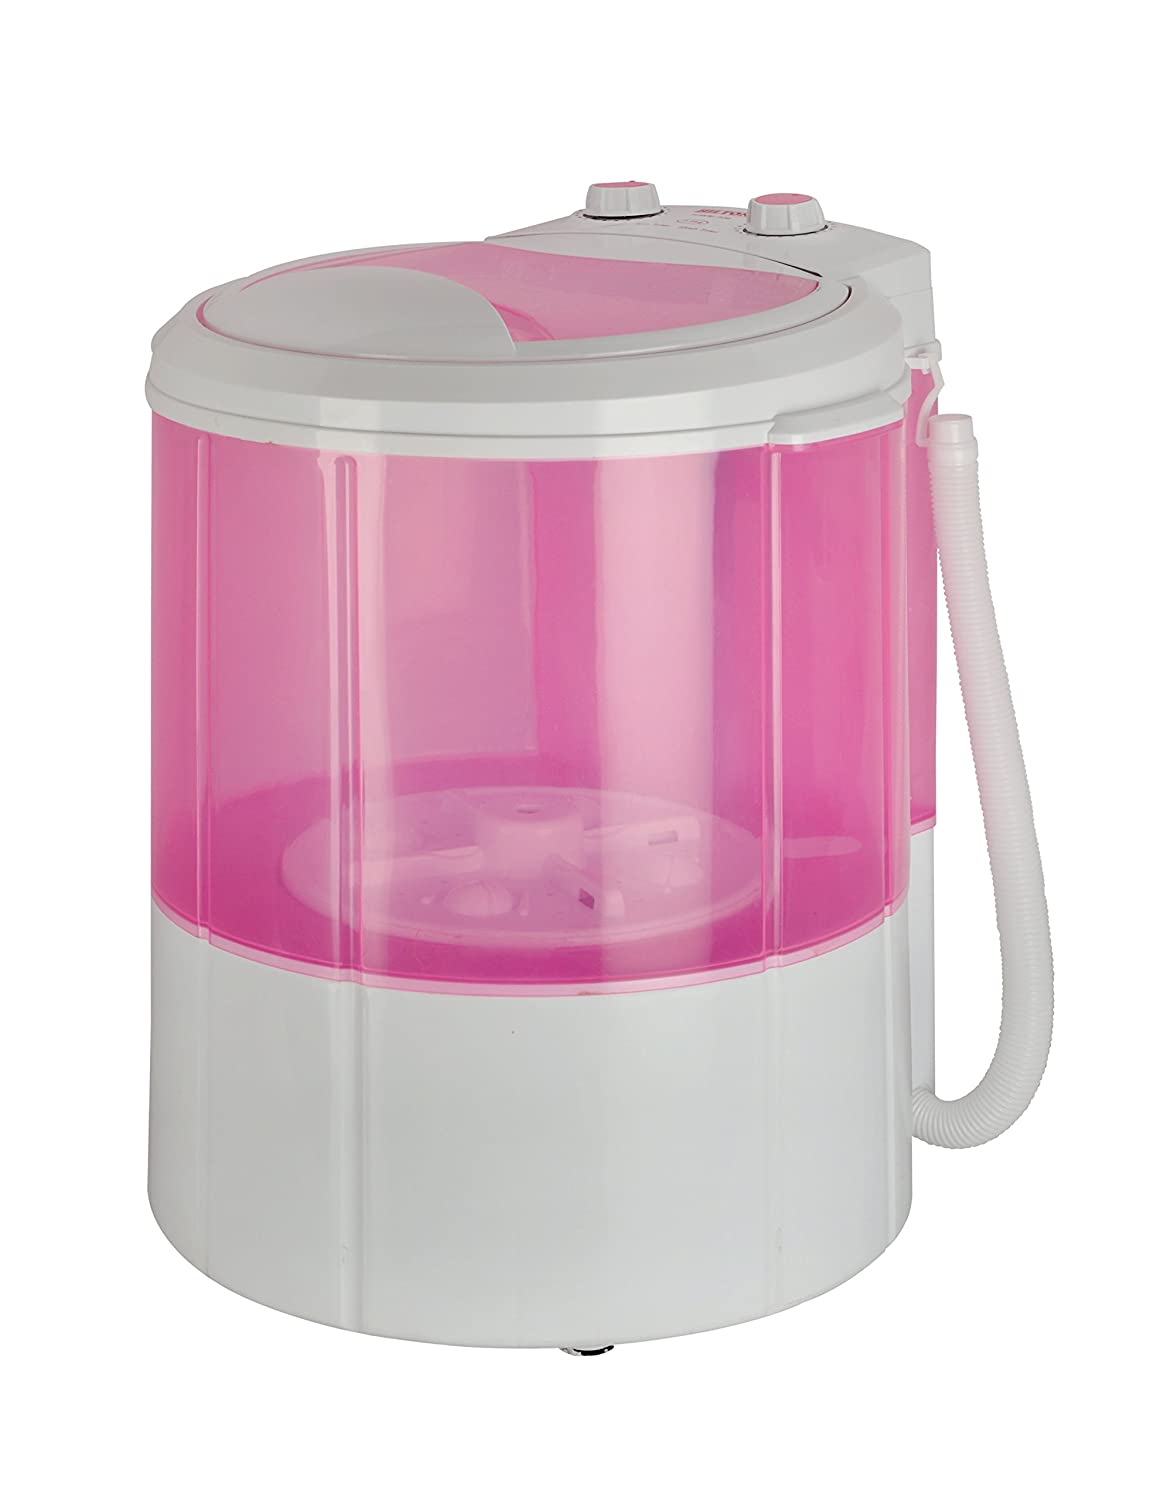 Hilton 3 kg Semi-Automatic Top Loading Washing Machine (HIMW-300, Pink)